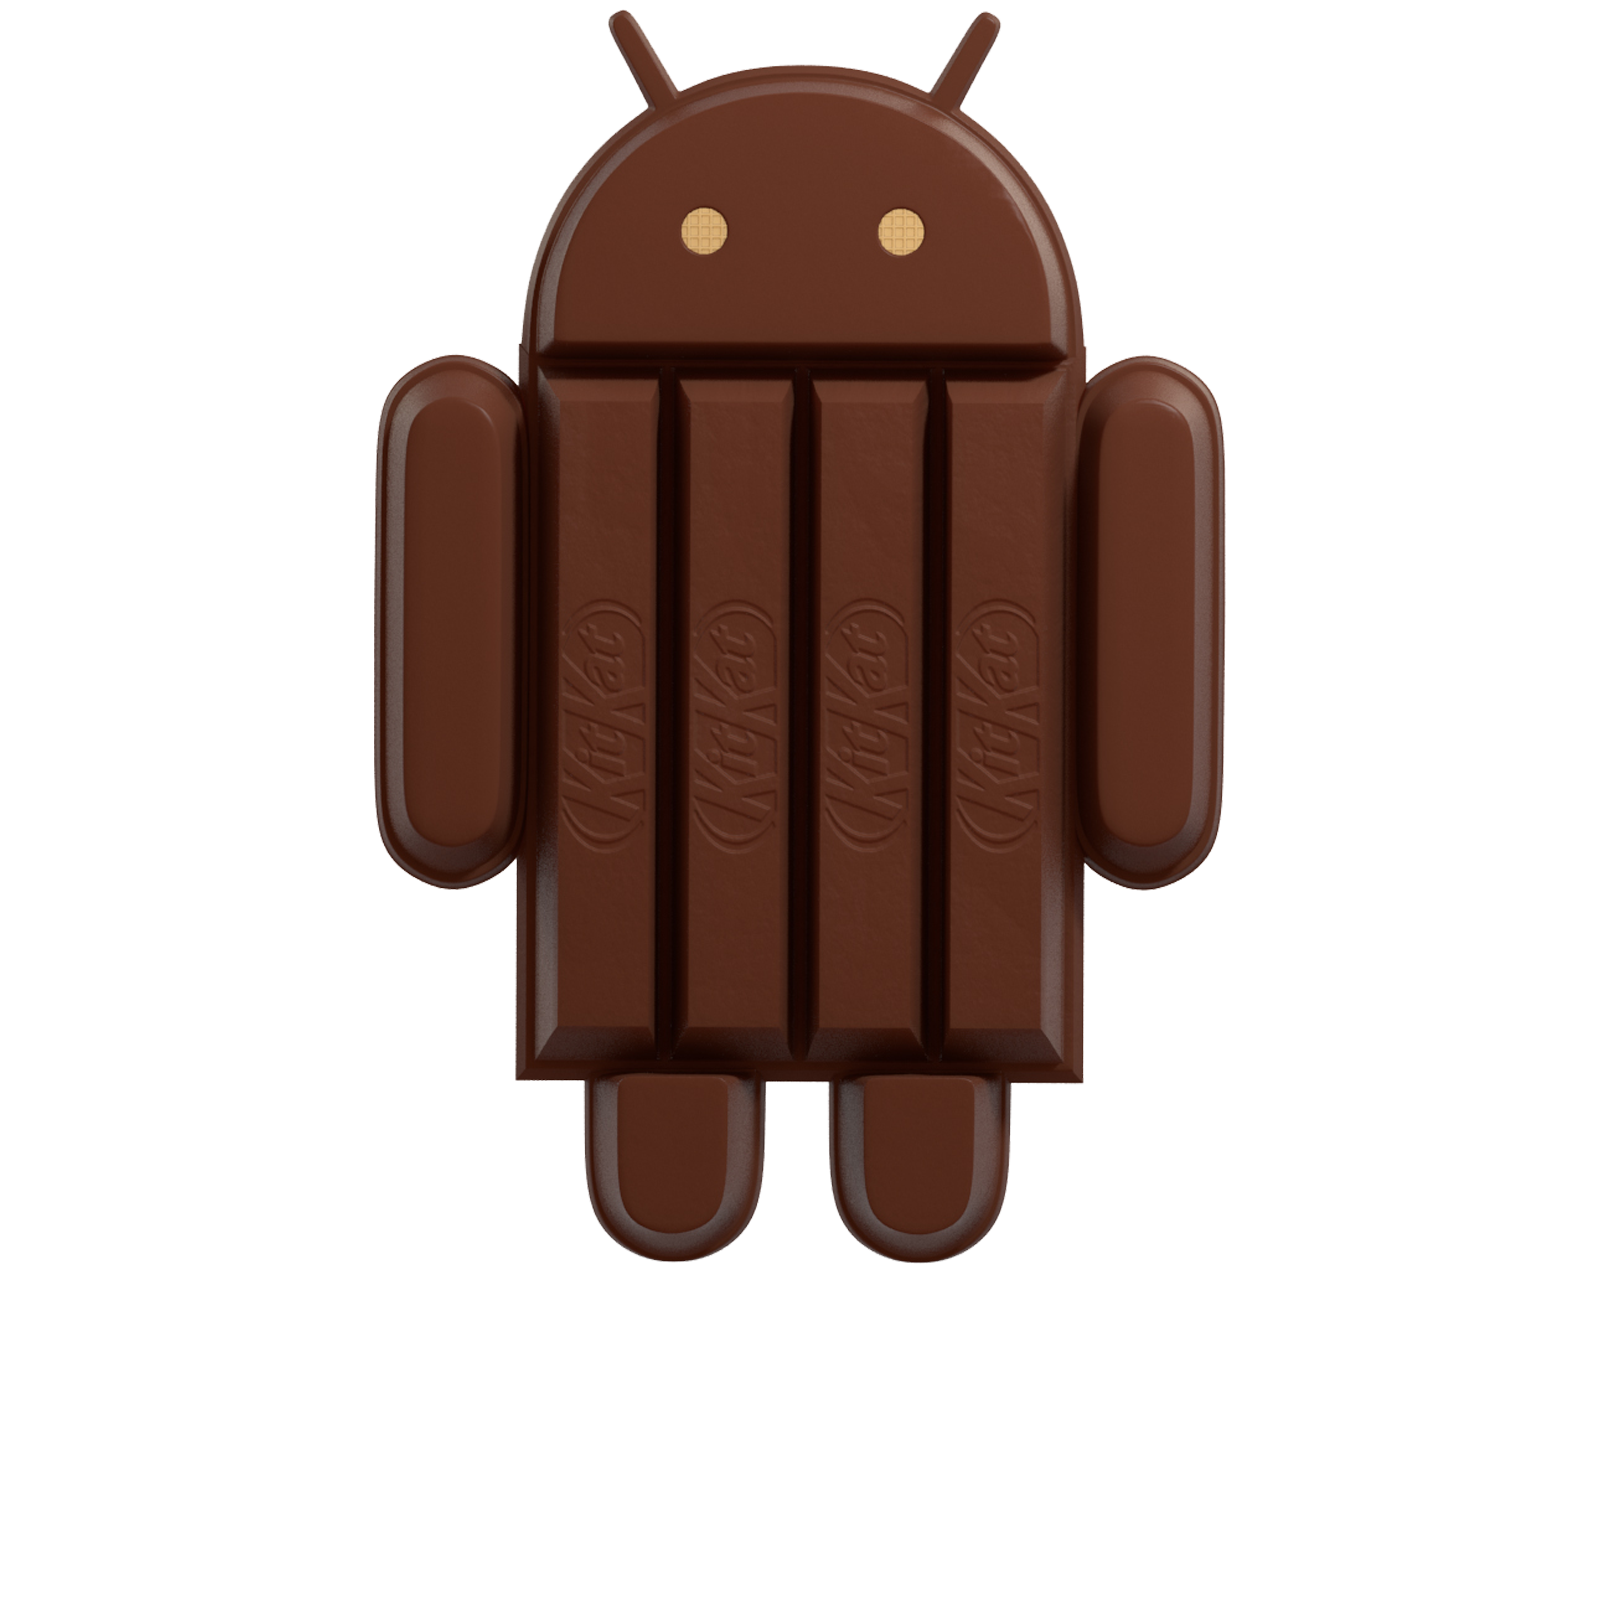 Tablet Mobile Phones Computers Kit Kitkat Kat PNG Image